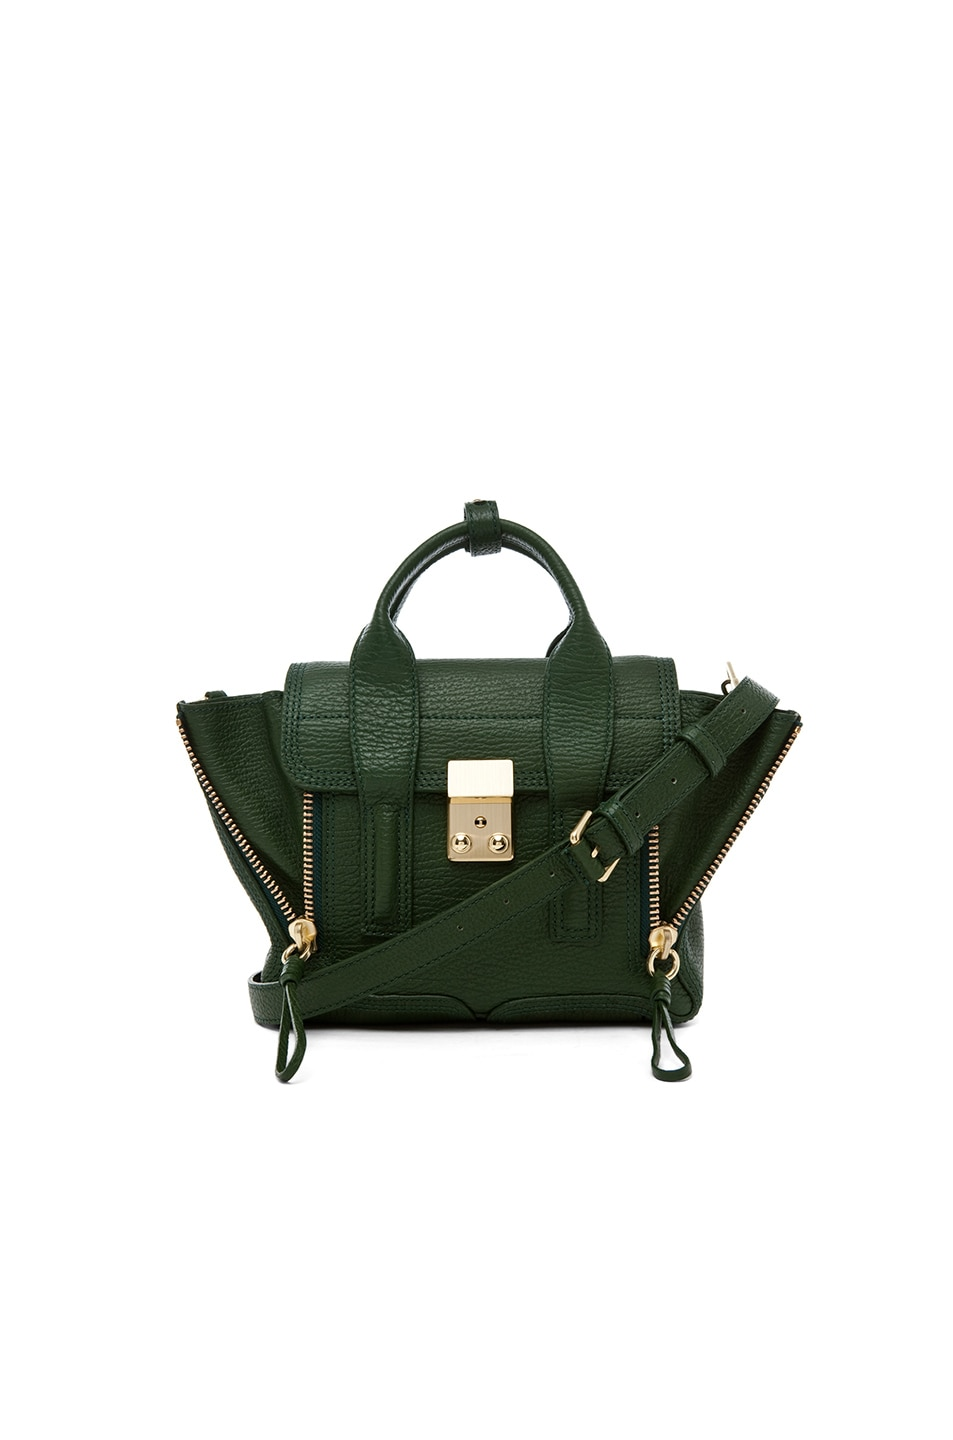 Image 1 of 3.1 phillip lim Mini Pashli Satchel in Jade